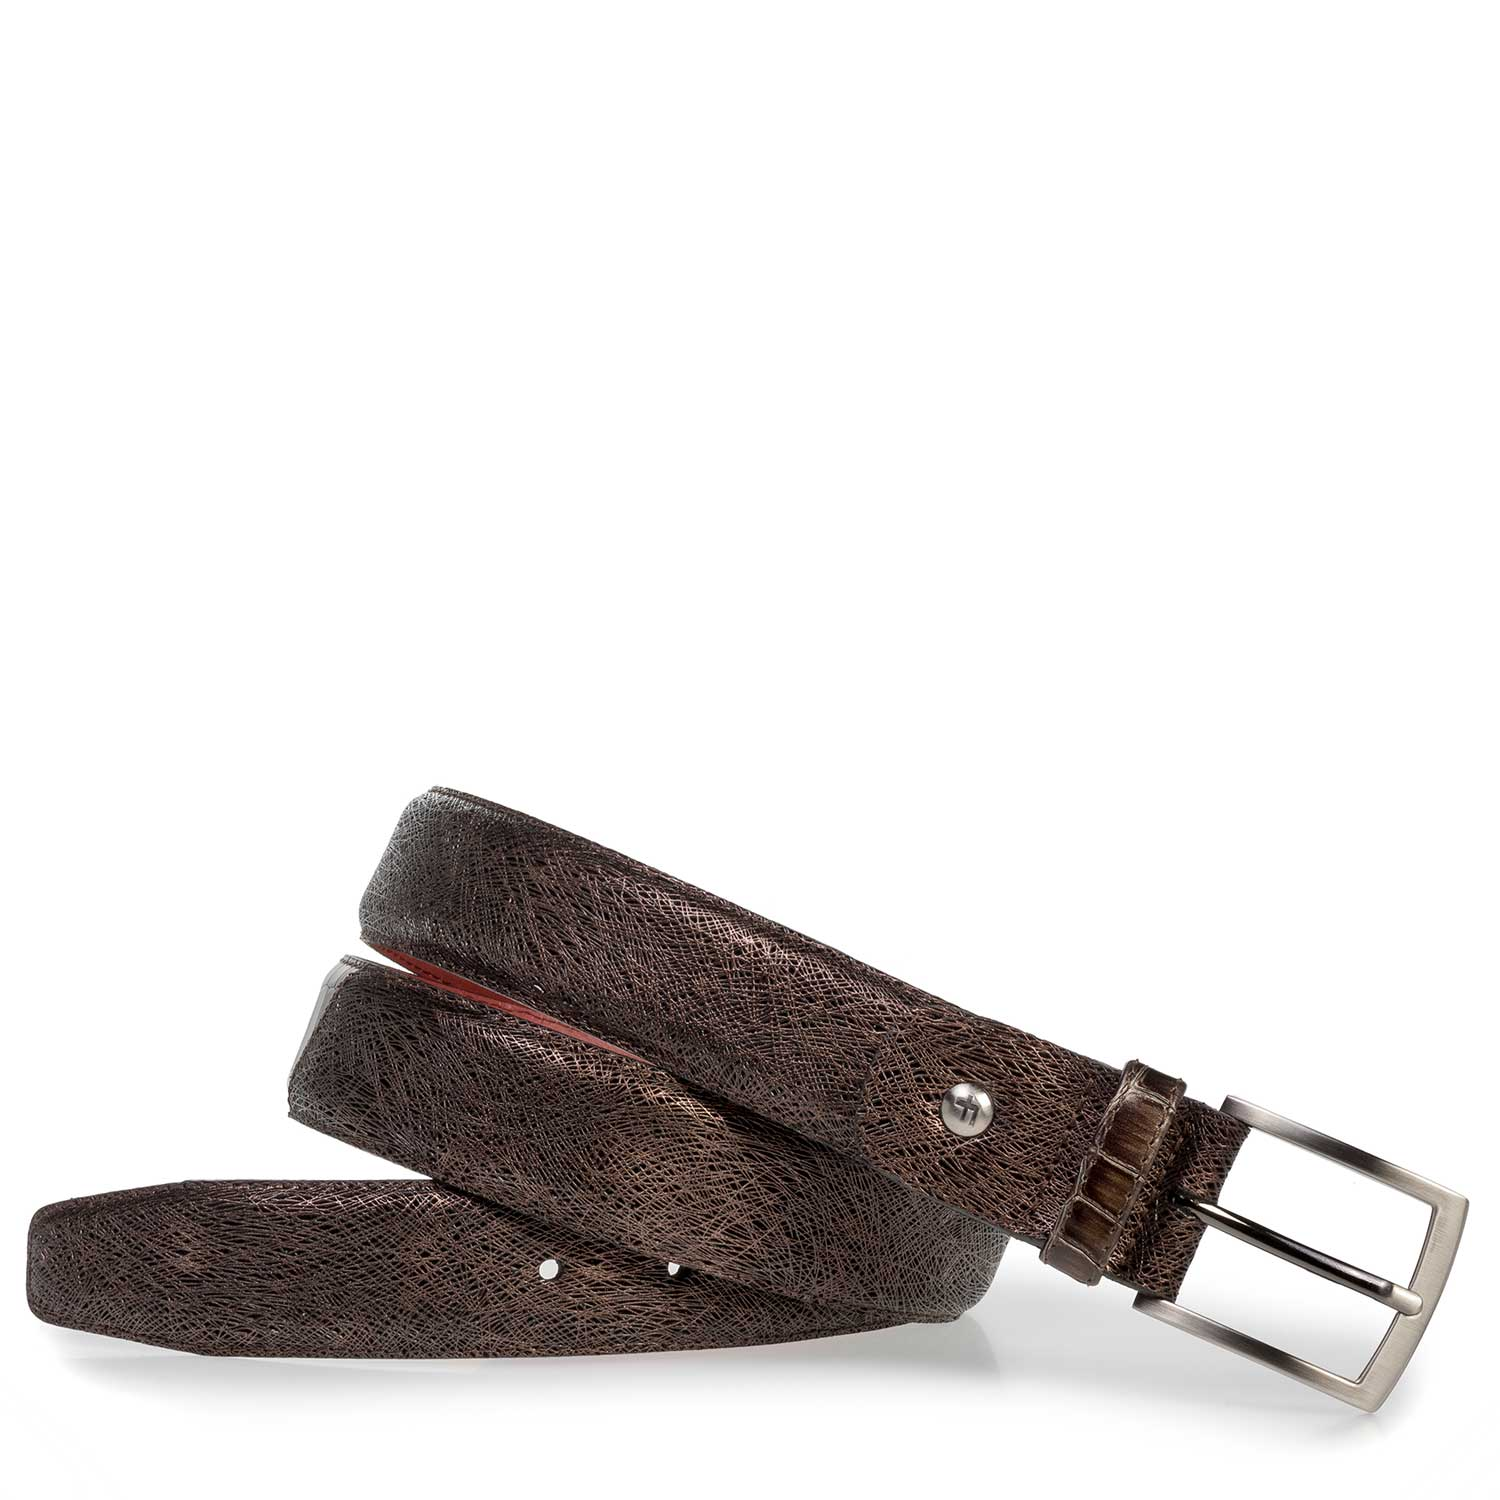 75188/44 - Brown leather belt with metallic print